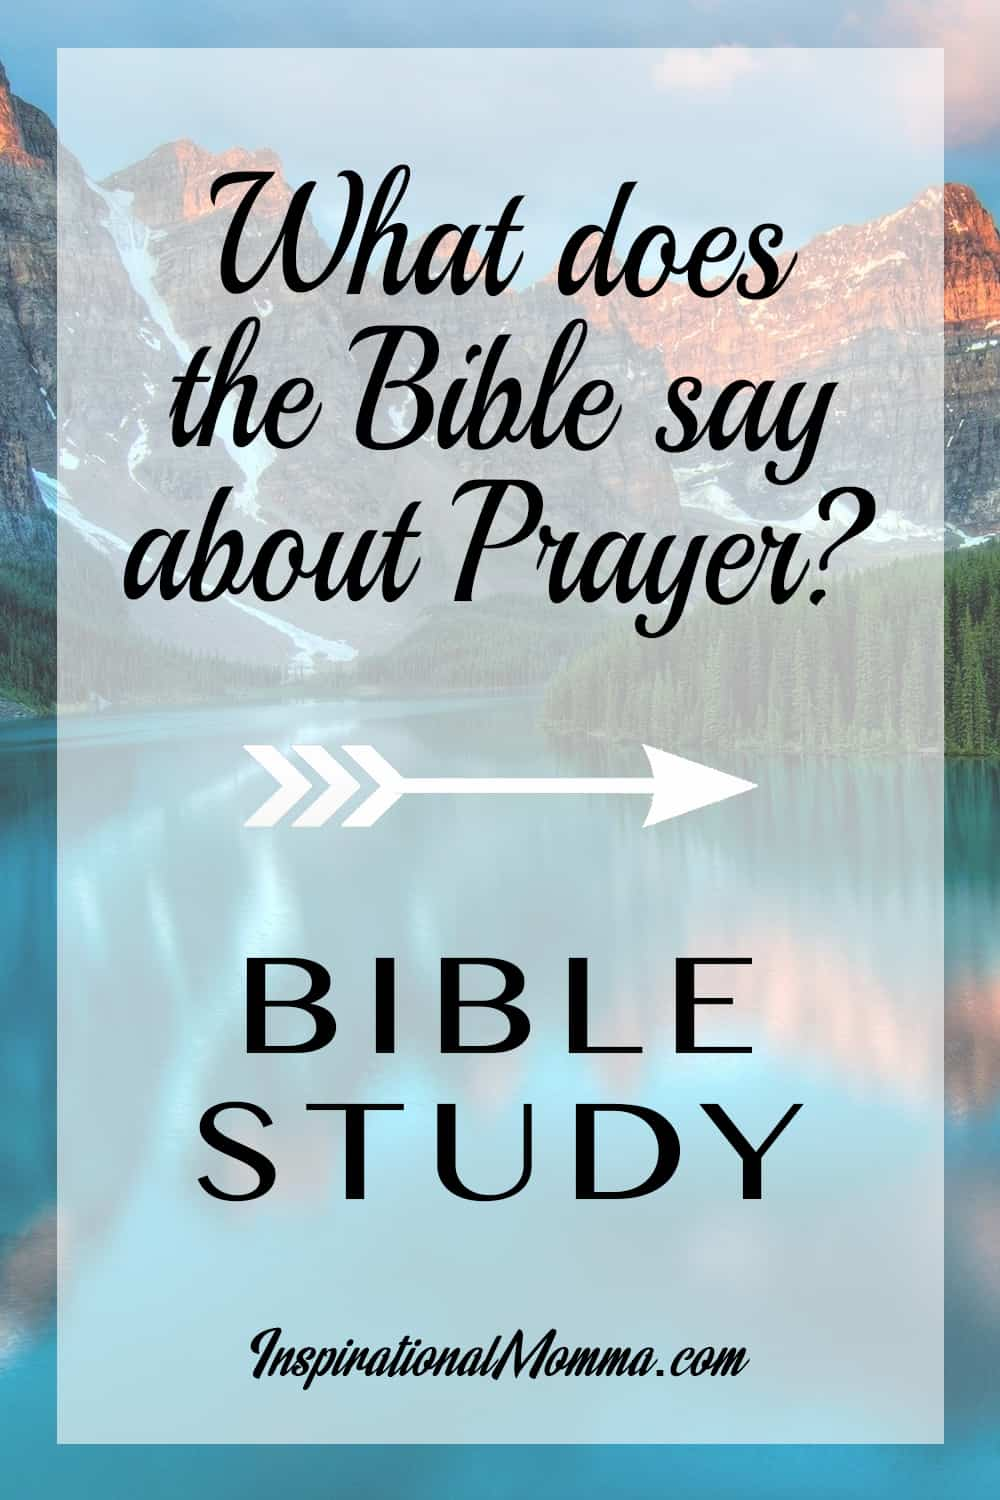 What does the Bible say about prayer? Prayer is the most intimate connection we have with our heavenly Father. Learn how to use prayer in any situation!#inspirationalmomma #whatdoesthebiblesayaboutprayer #prayer #bible #biblestudy #praying #pray